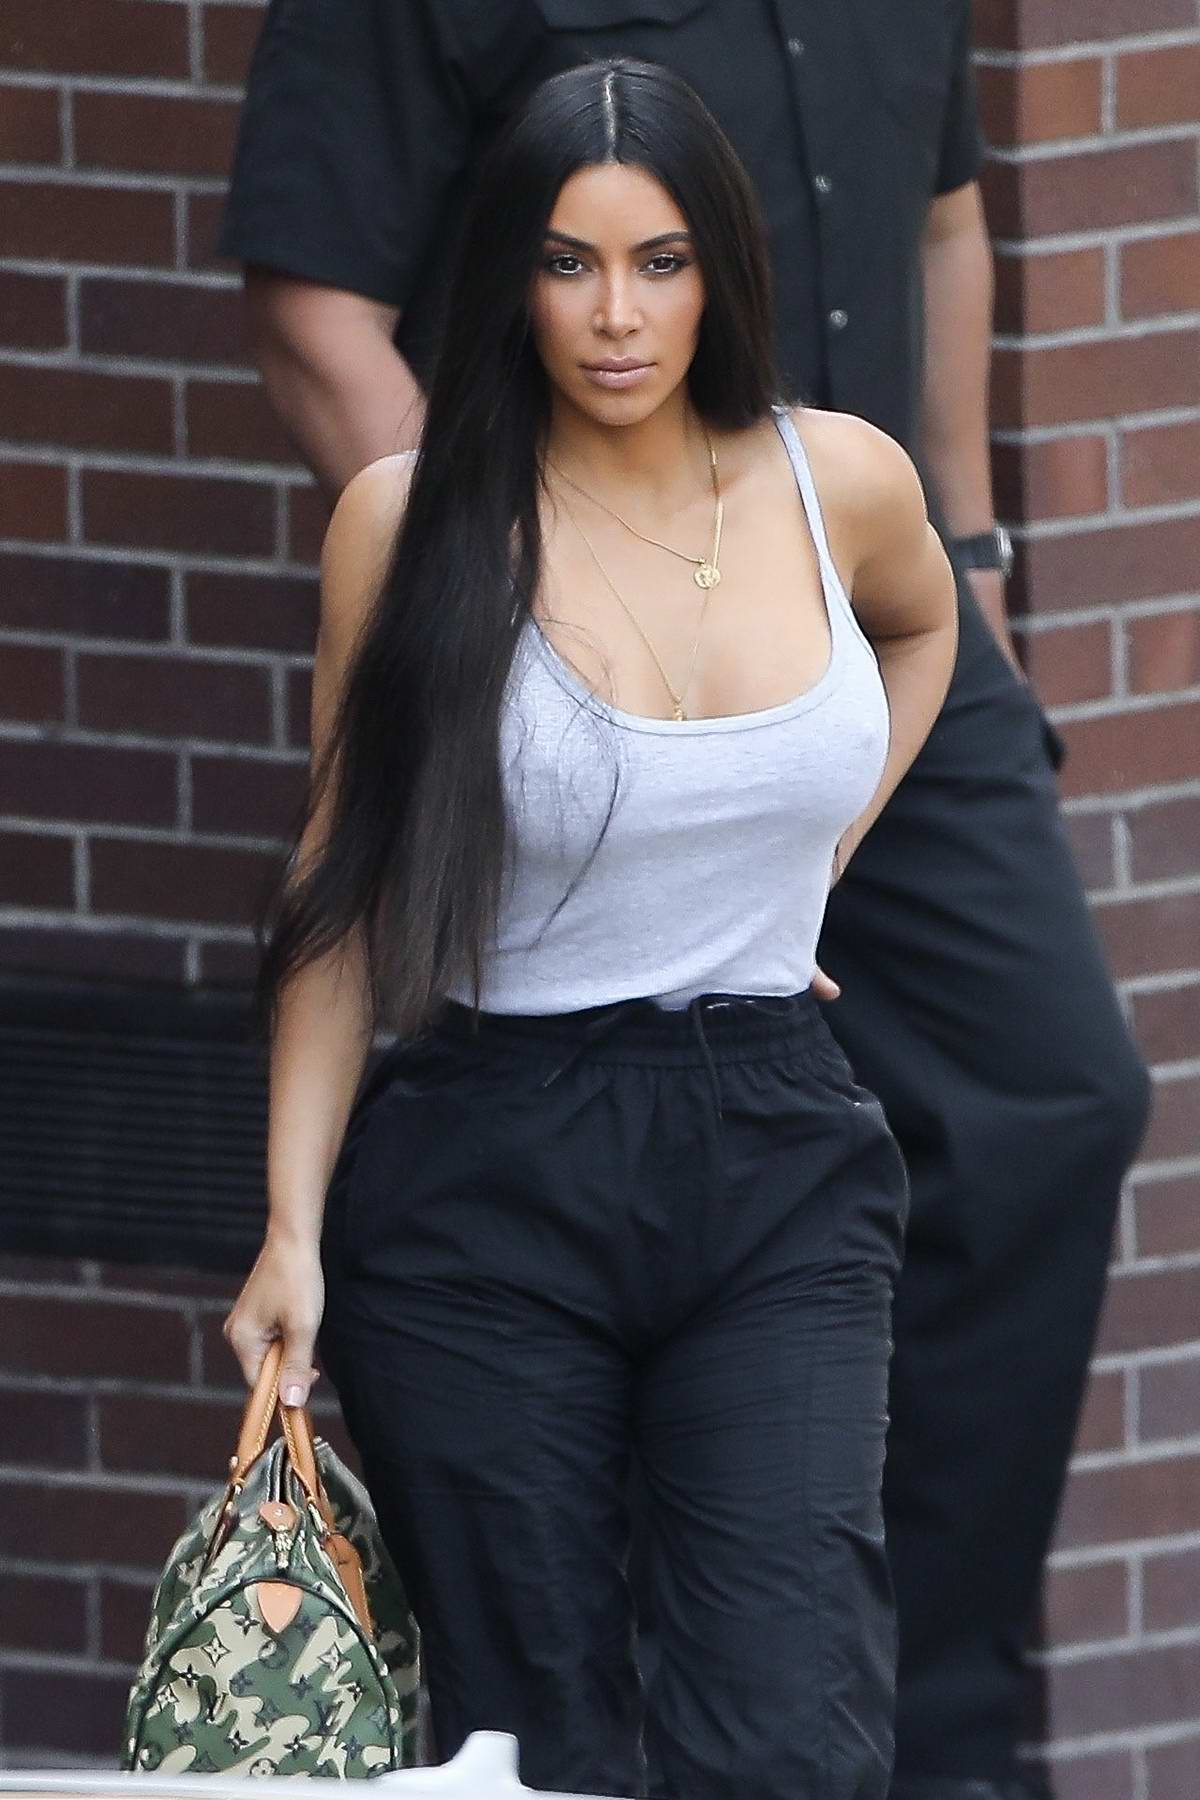 Kim Kardashian steps out to have lunch with sister Khloe in Los Angeles